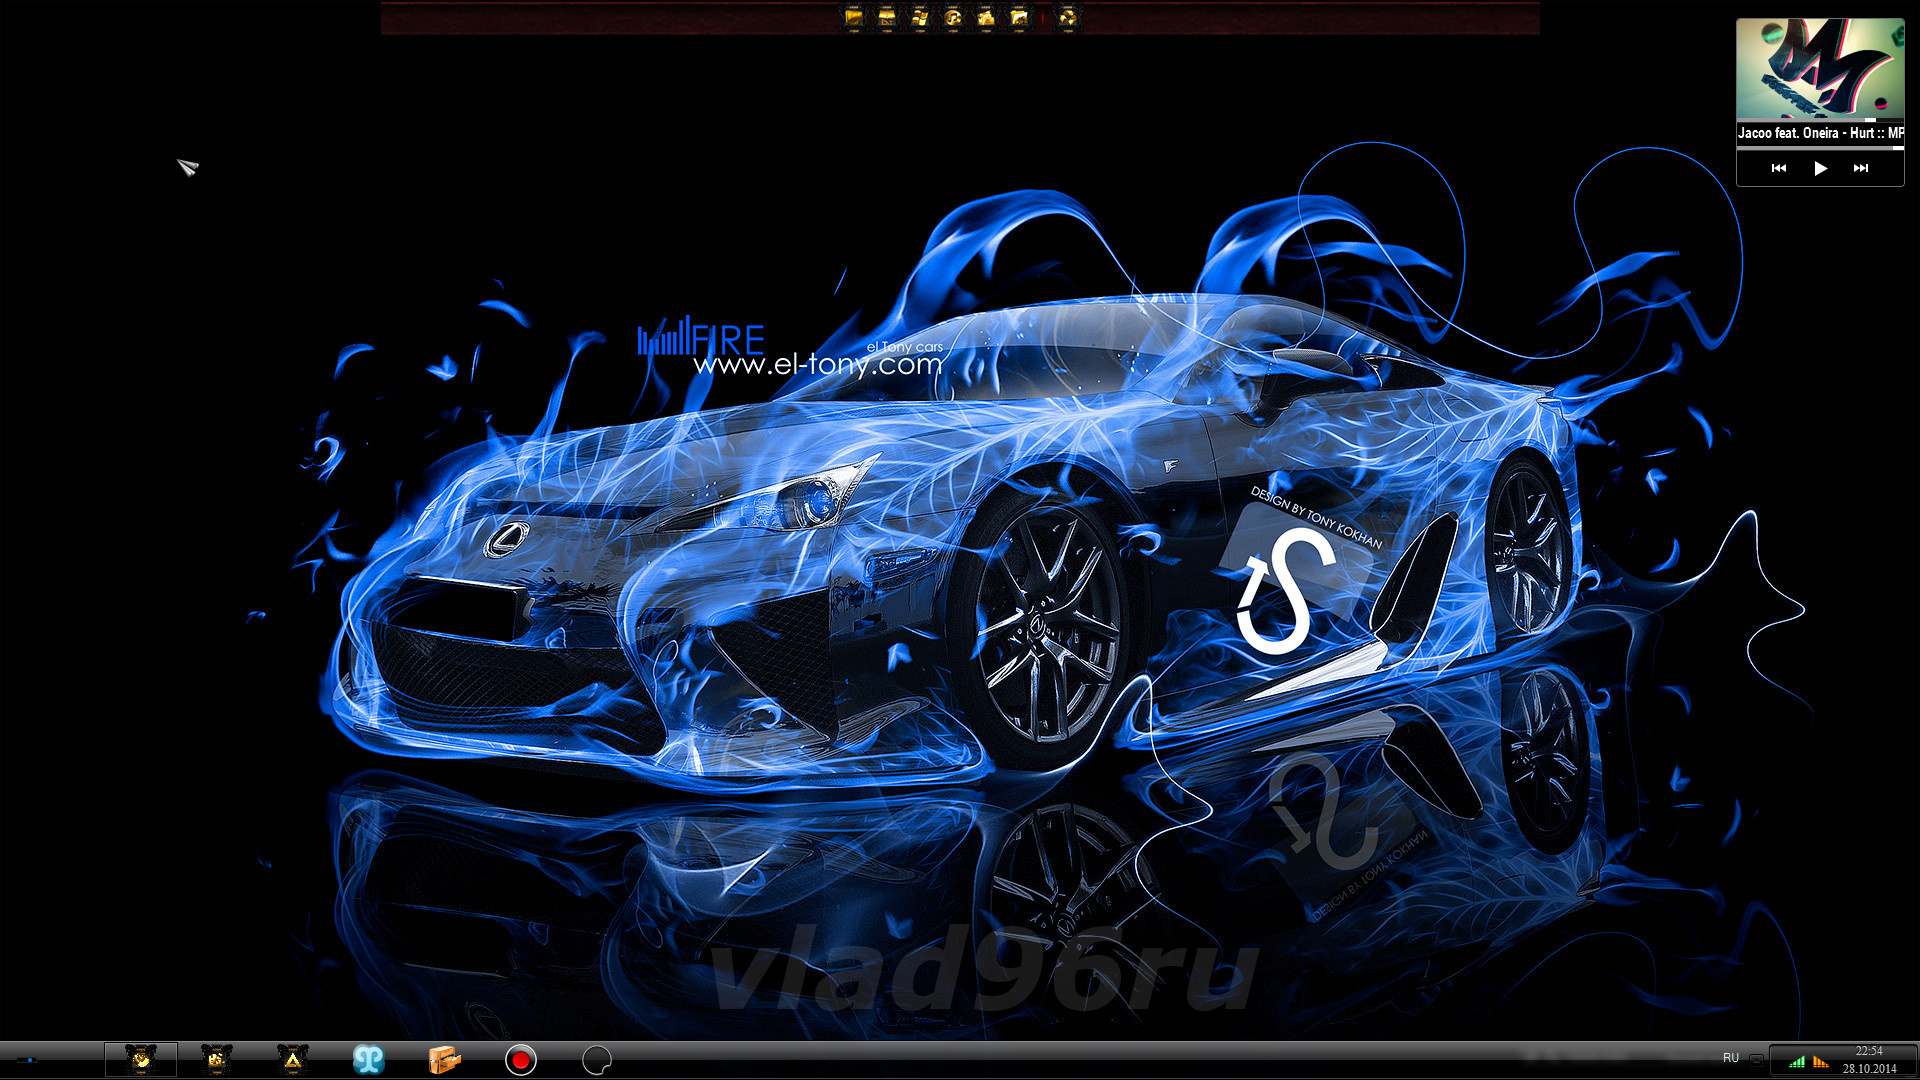 W7 Theme 7even 4our 8ight V.3 ;o) by Tiger